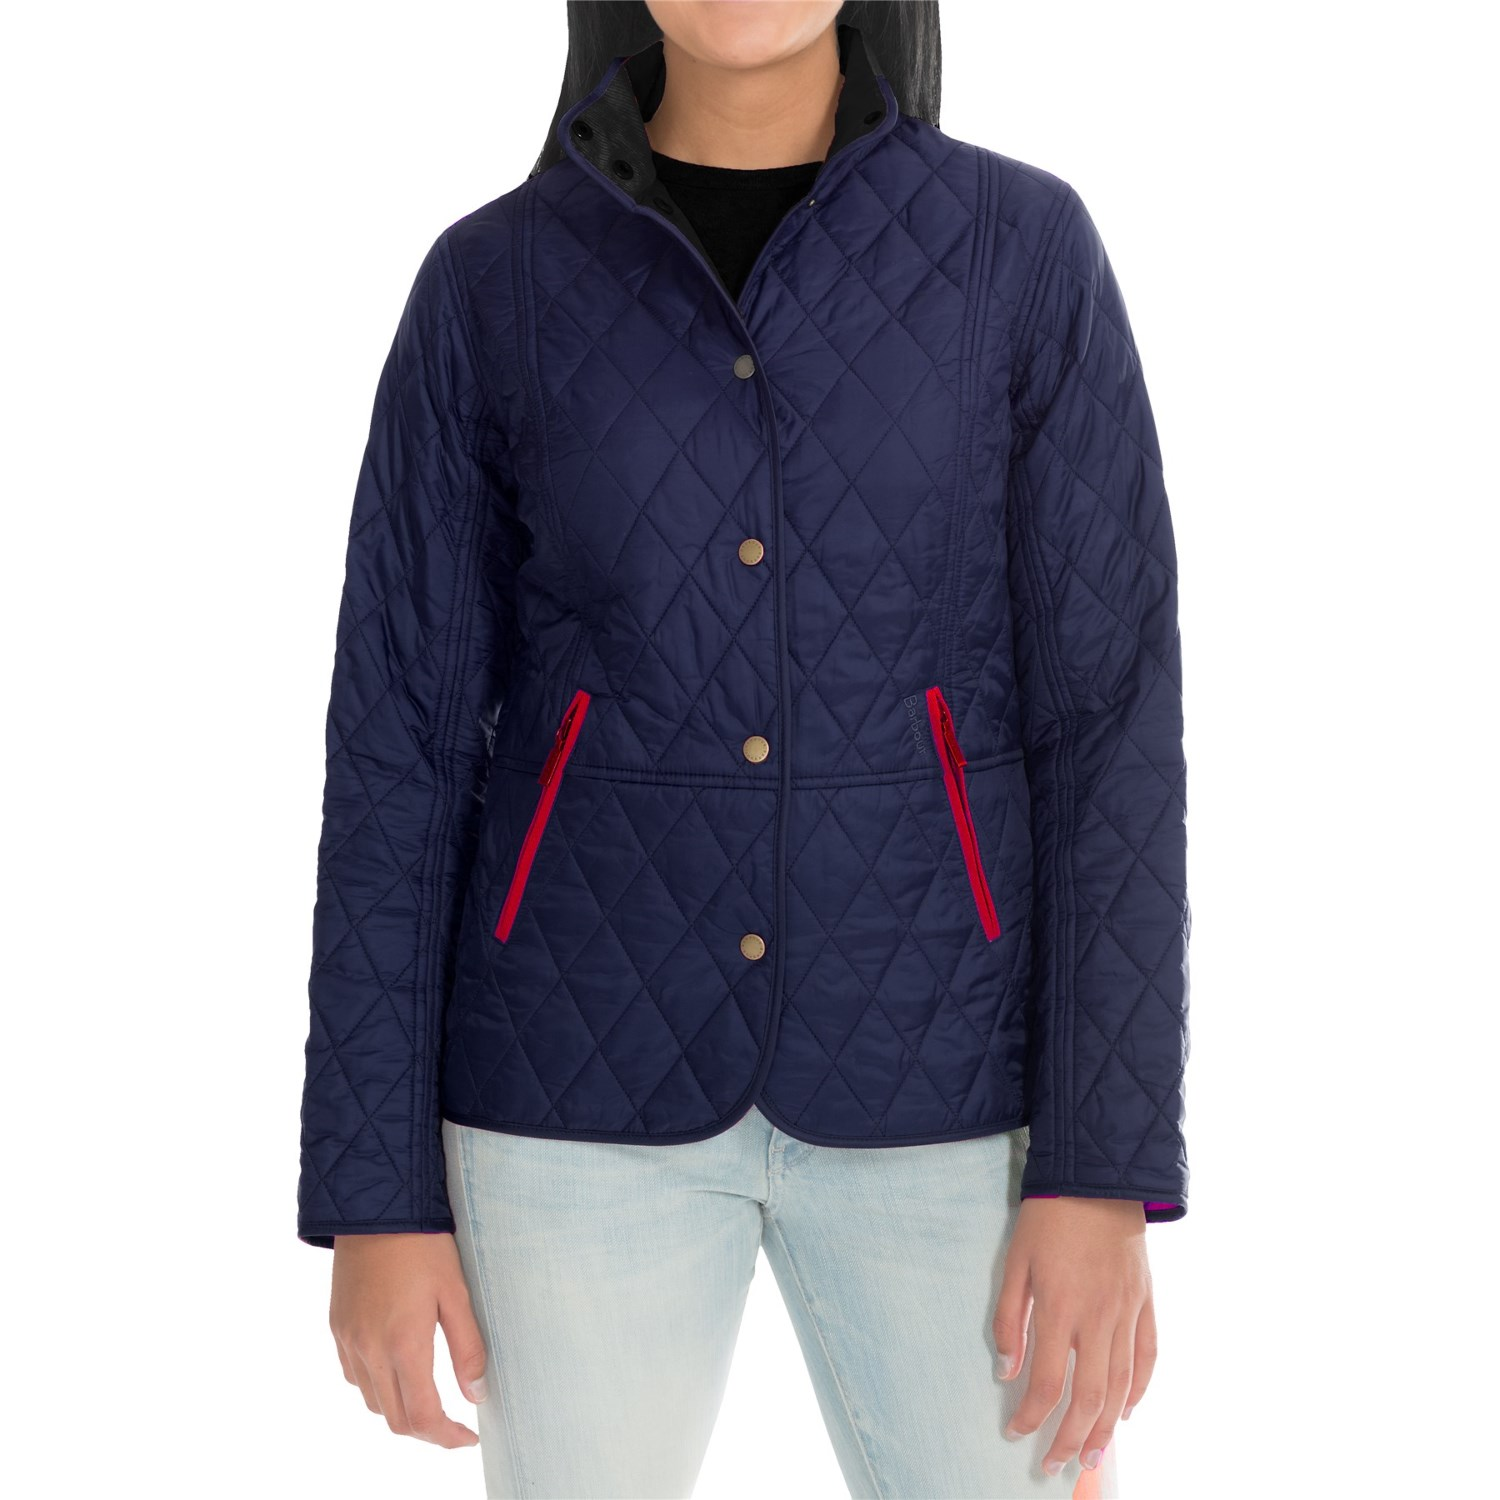 Barbour Chestnut Diamond Quilted Jacket (For Women) - Save 56